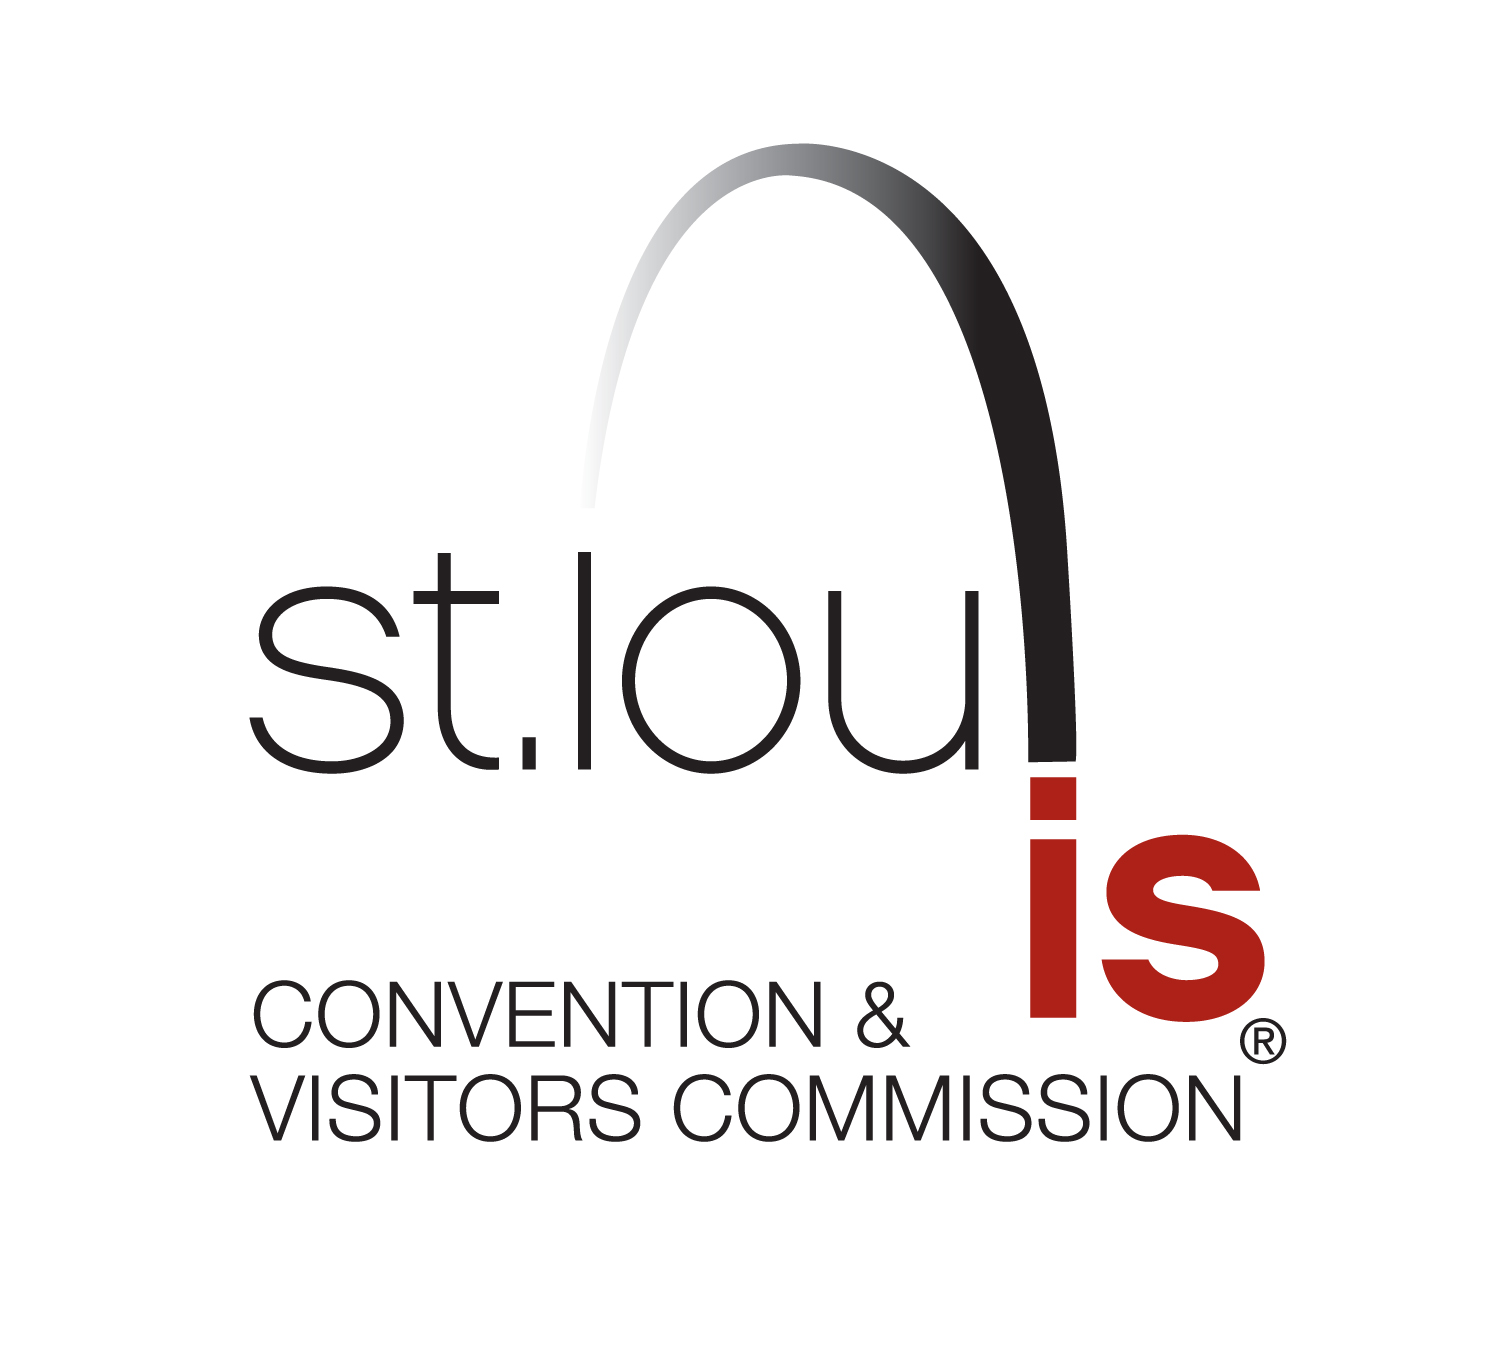 STL Convention Center